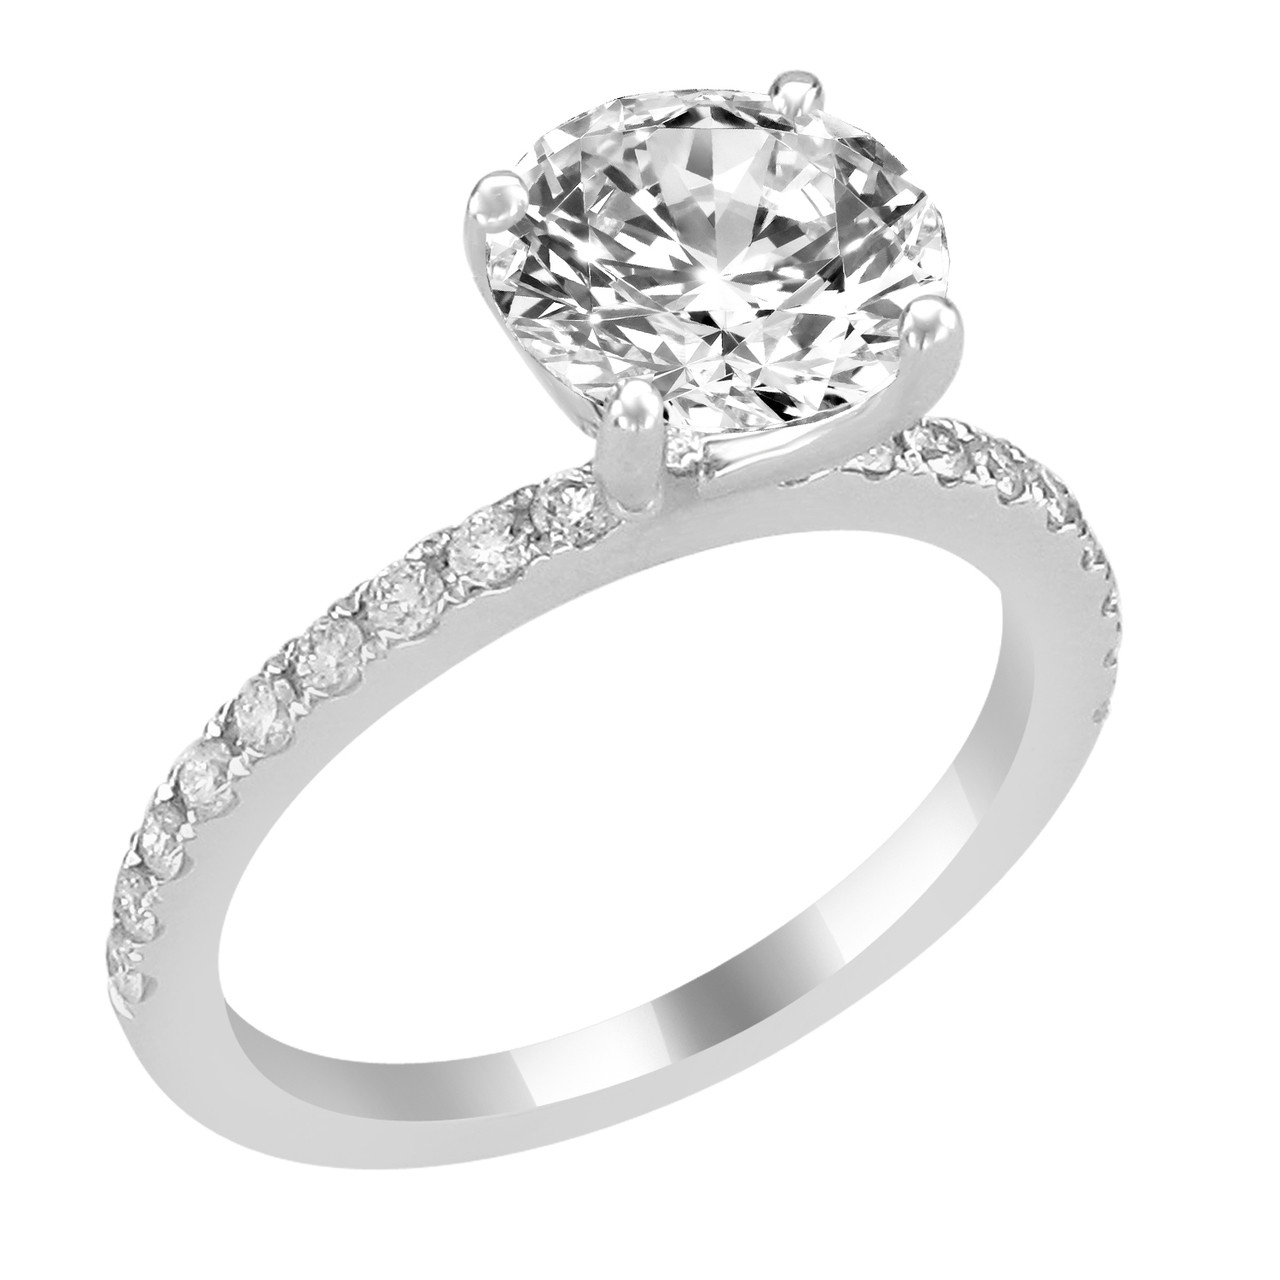 How to Properly Size White Gold Engagement Rings